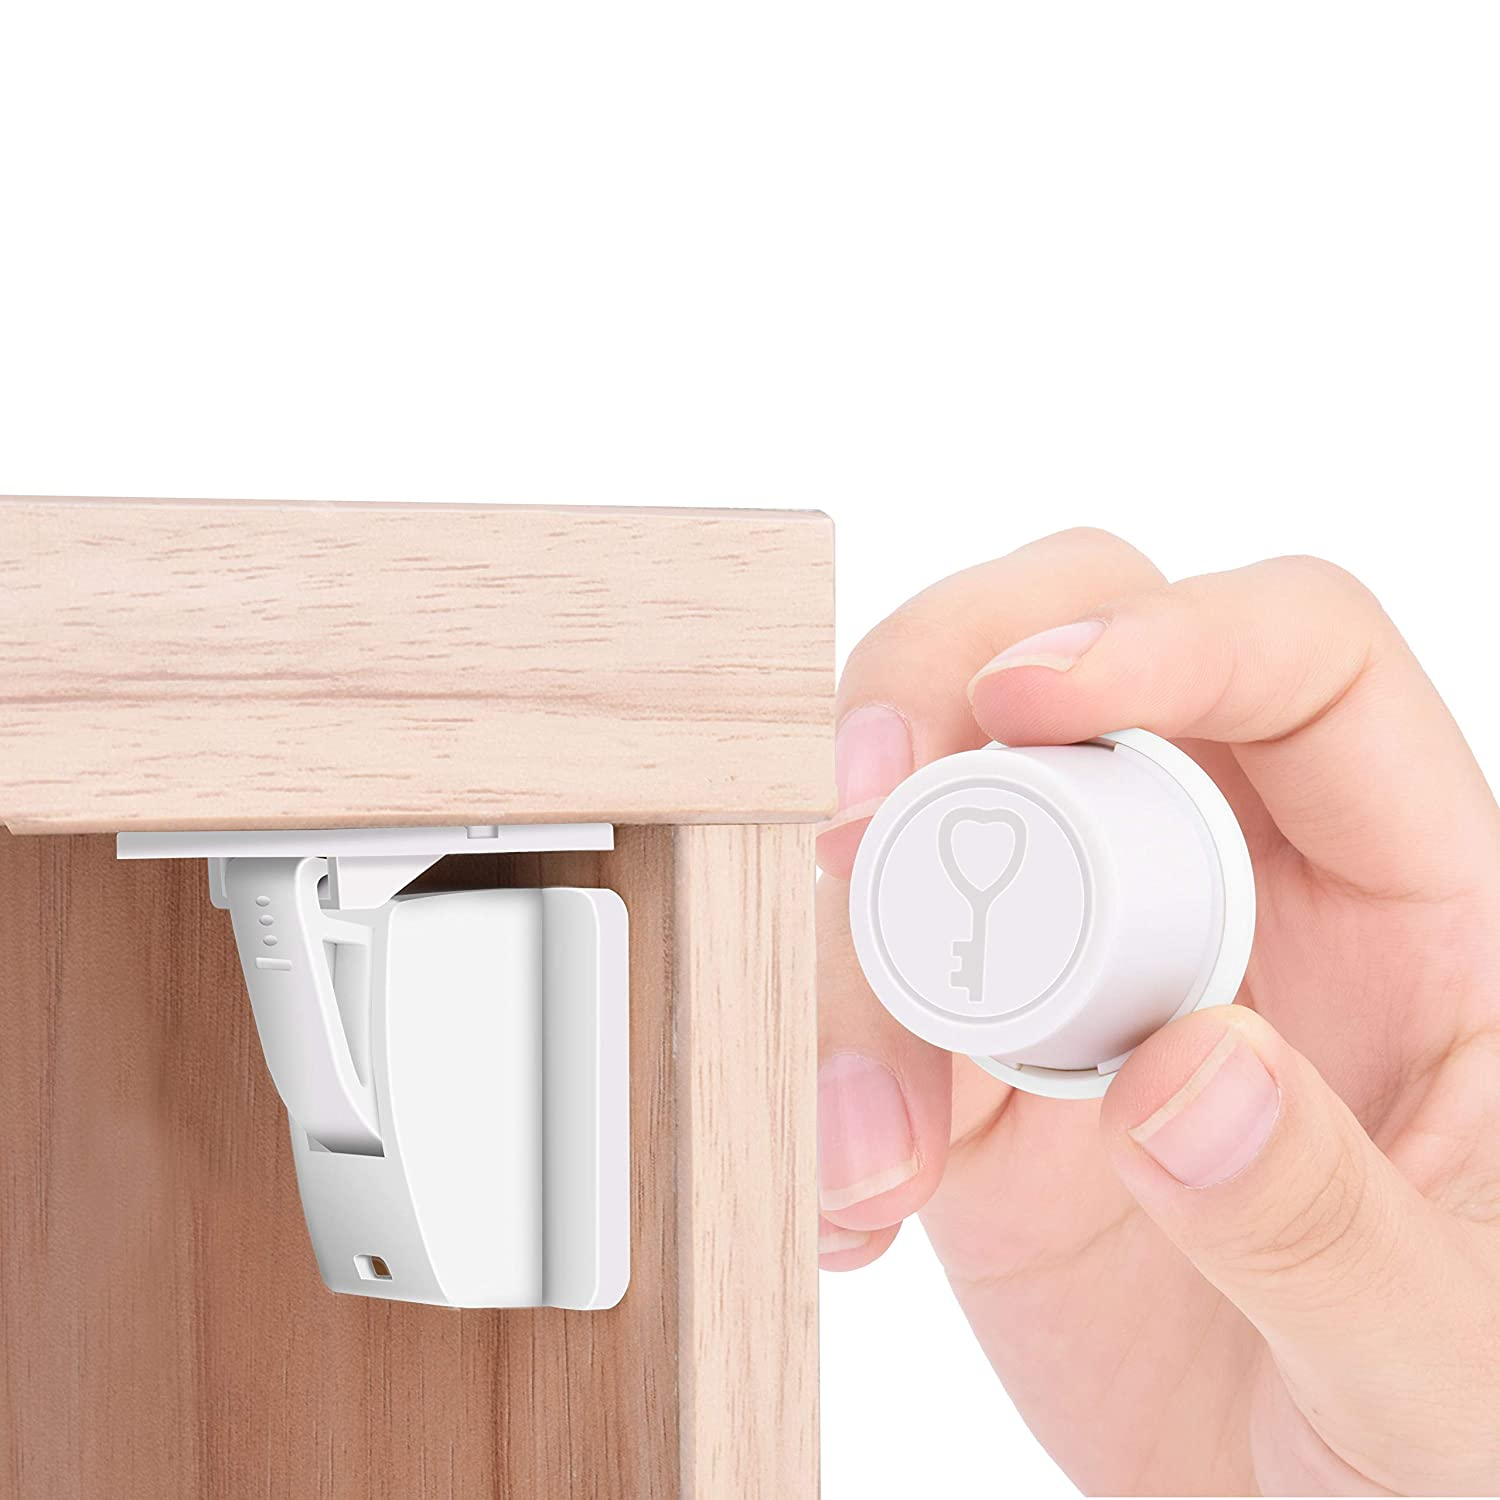 Child Proof Magnetic Cabinet Locks - Baby Safety Invisible Drawers Locks -Baby Proofing System with Quick Installation Template -Easy to Install, Strong Adhesive, No Drilling, No Tools Needed(5 Pack)